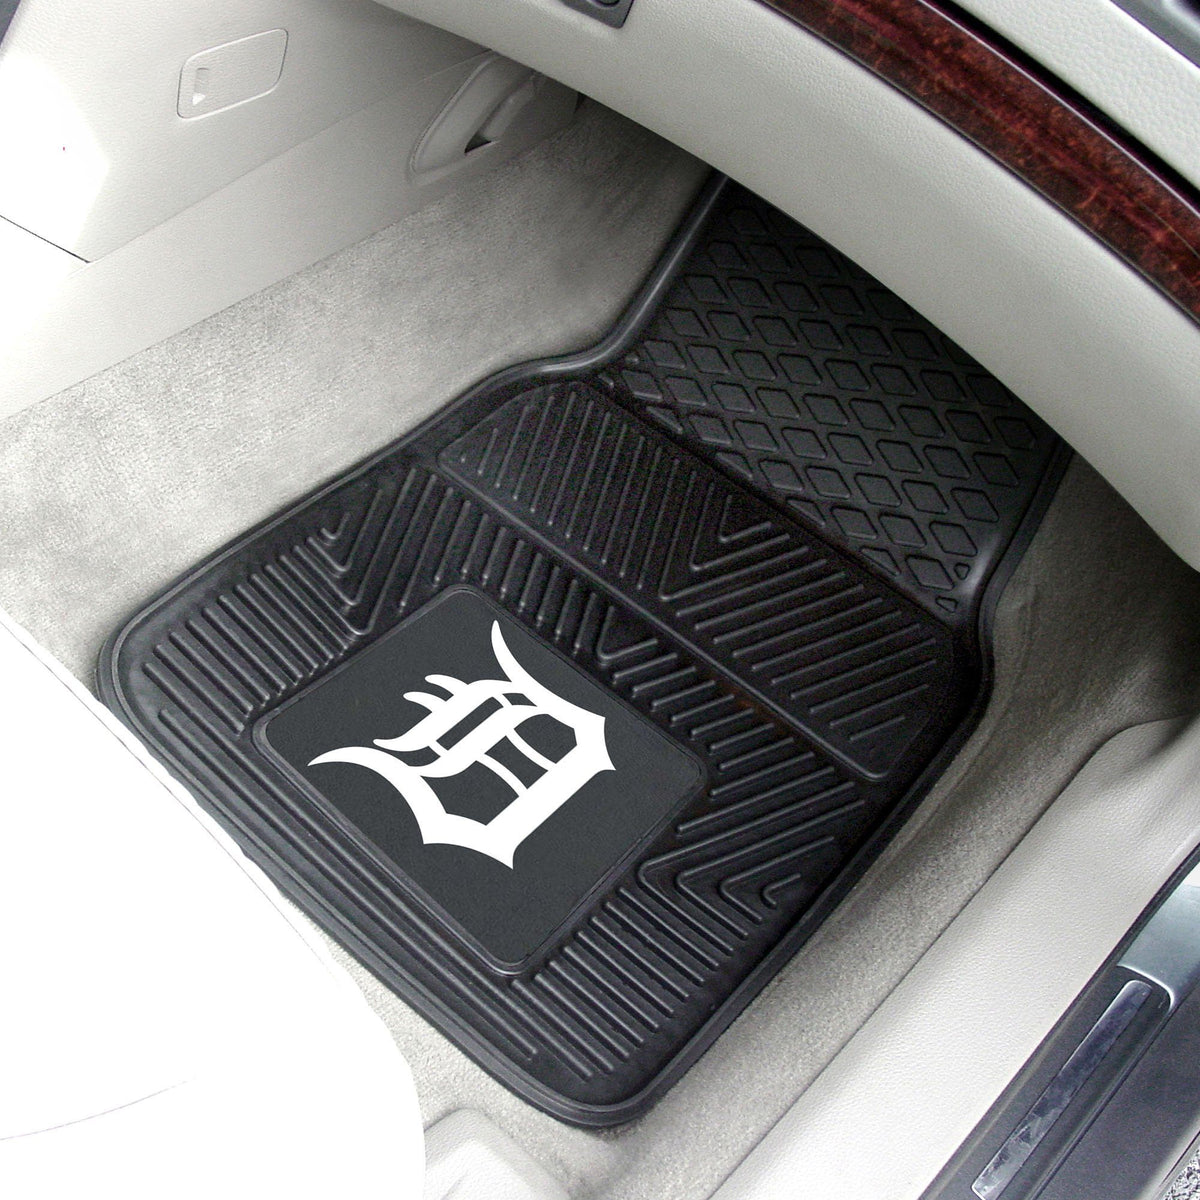 MLB - Vinyl Car Mat, 2-Piece Set MLB Mats, Front Car Mats, 2-pc Vinyl Car Mat Set, MLB, Auto Fan Mats Detroit Tigers